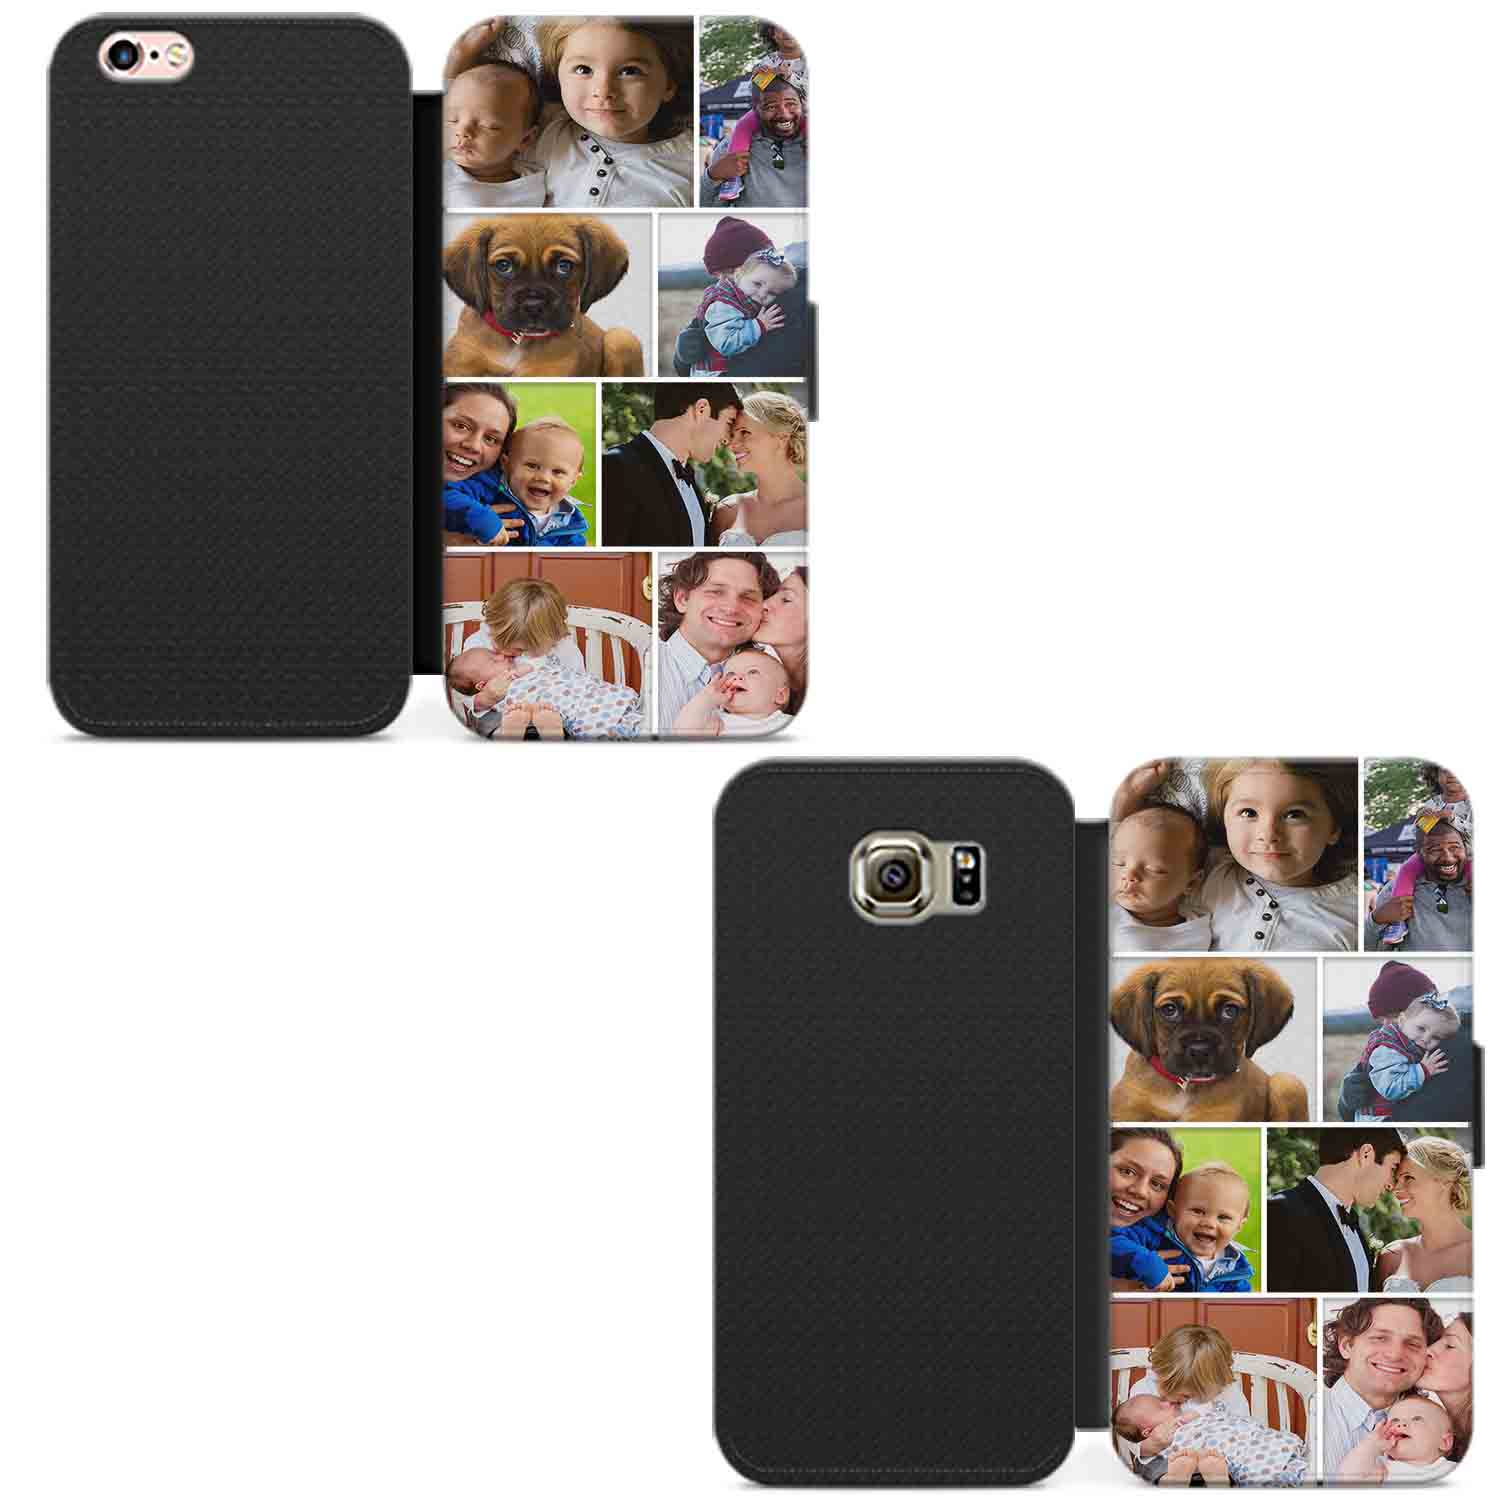 PERSONALISED-PHOTO-PHONE-CASE-WALLET-LEATHER-FLIP-COVER-CUSTOMISED-PICTURE-IMAGE thumbnail 7